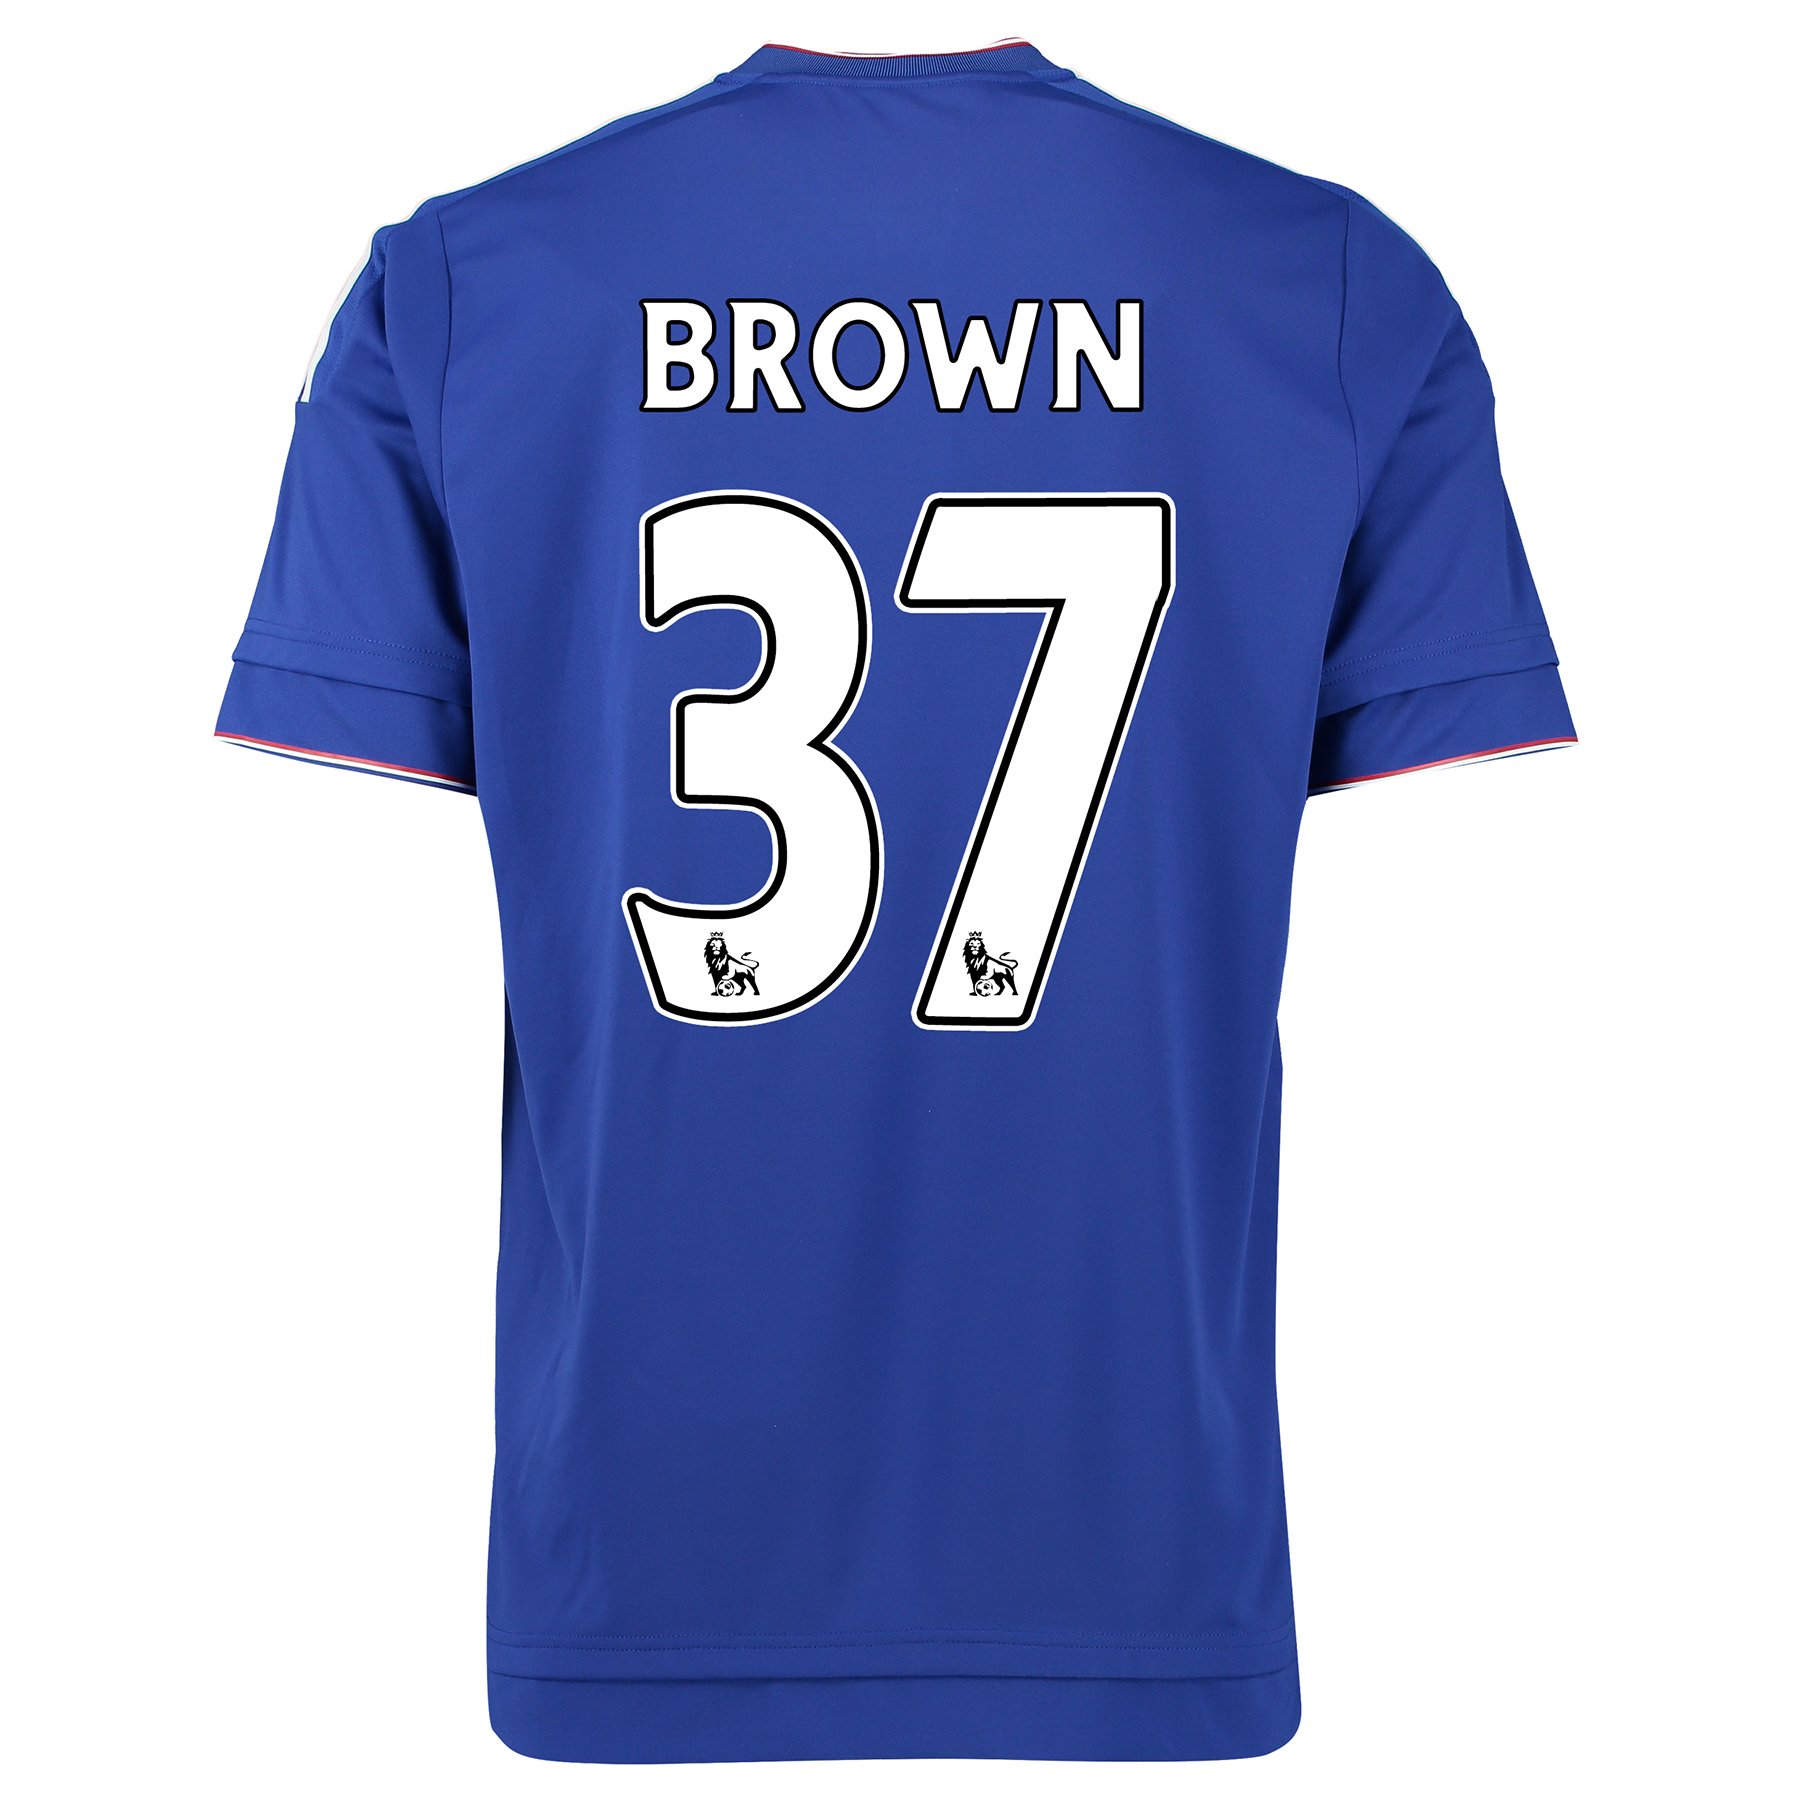 Chelsea Home Shirt 2015/16 Kids Blue with Brown 37 printing